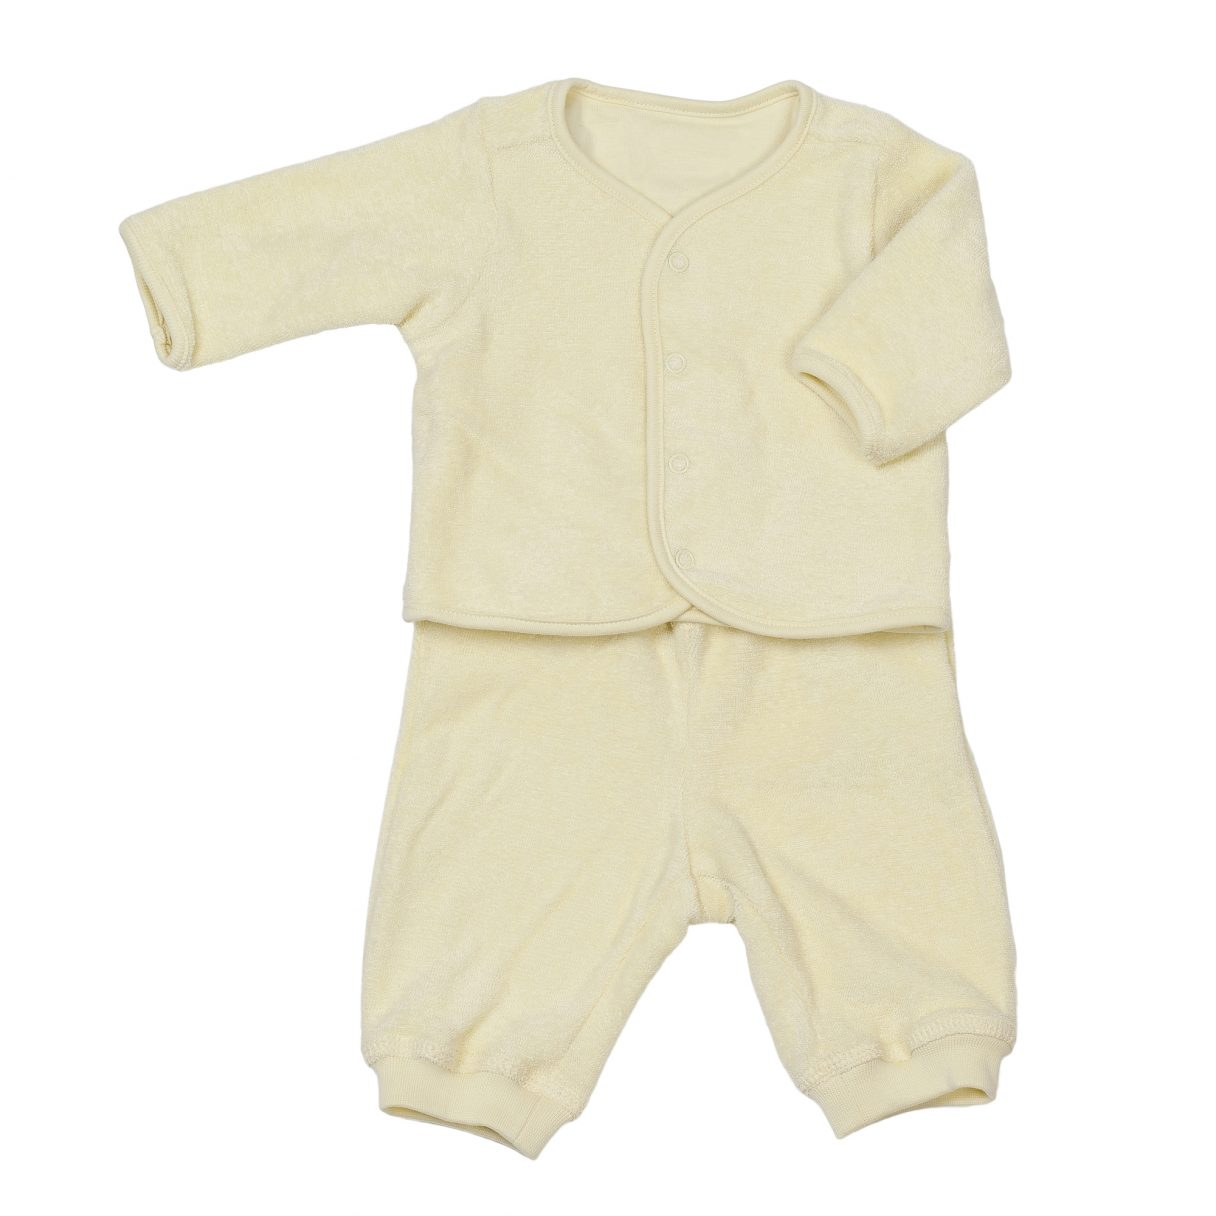 Baby Organic Cotton Sweatsuit Yellow